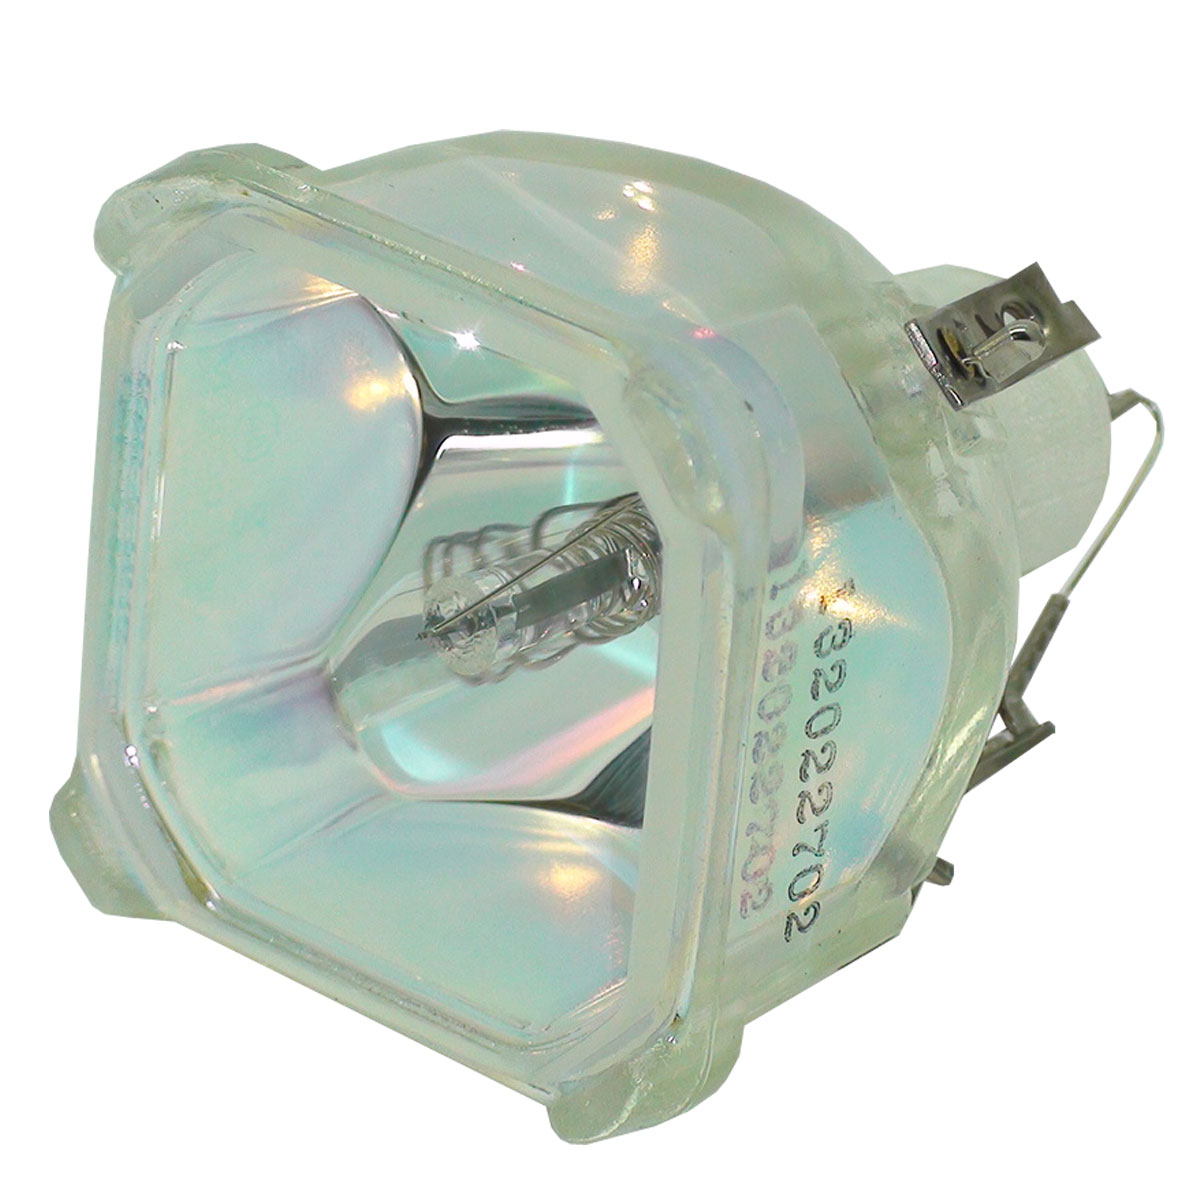 Original Philips Projector Lamp Replacement for 3M X40 (Bulb Only) - image 5 of 5